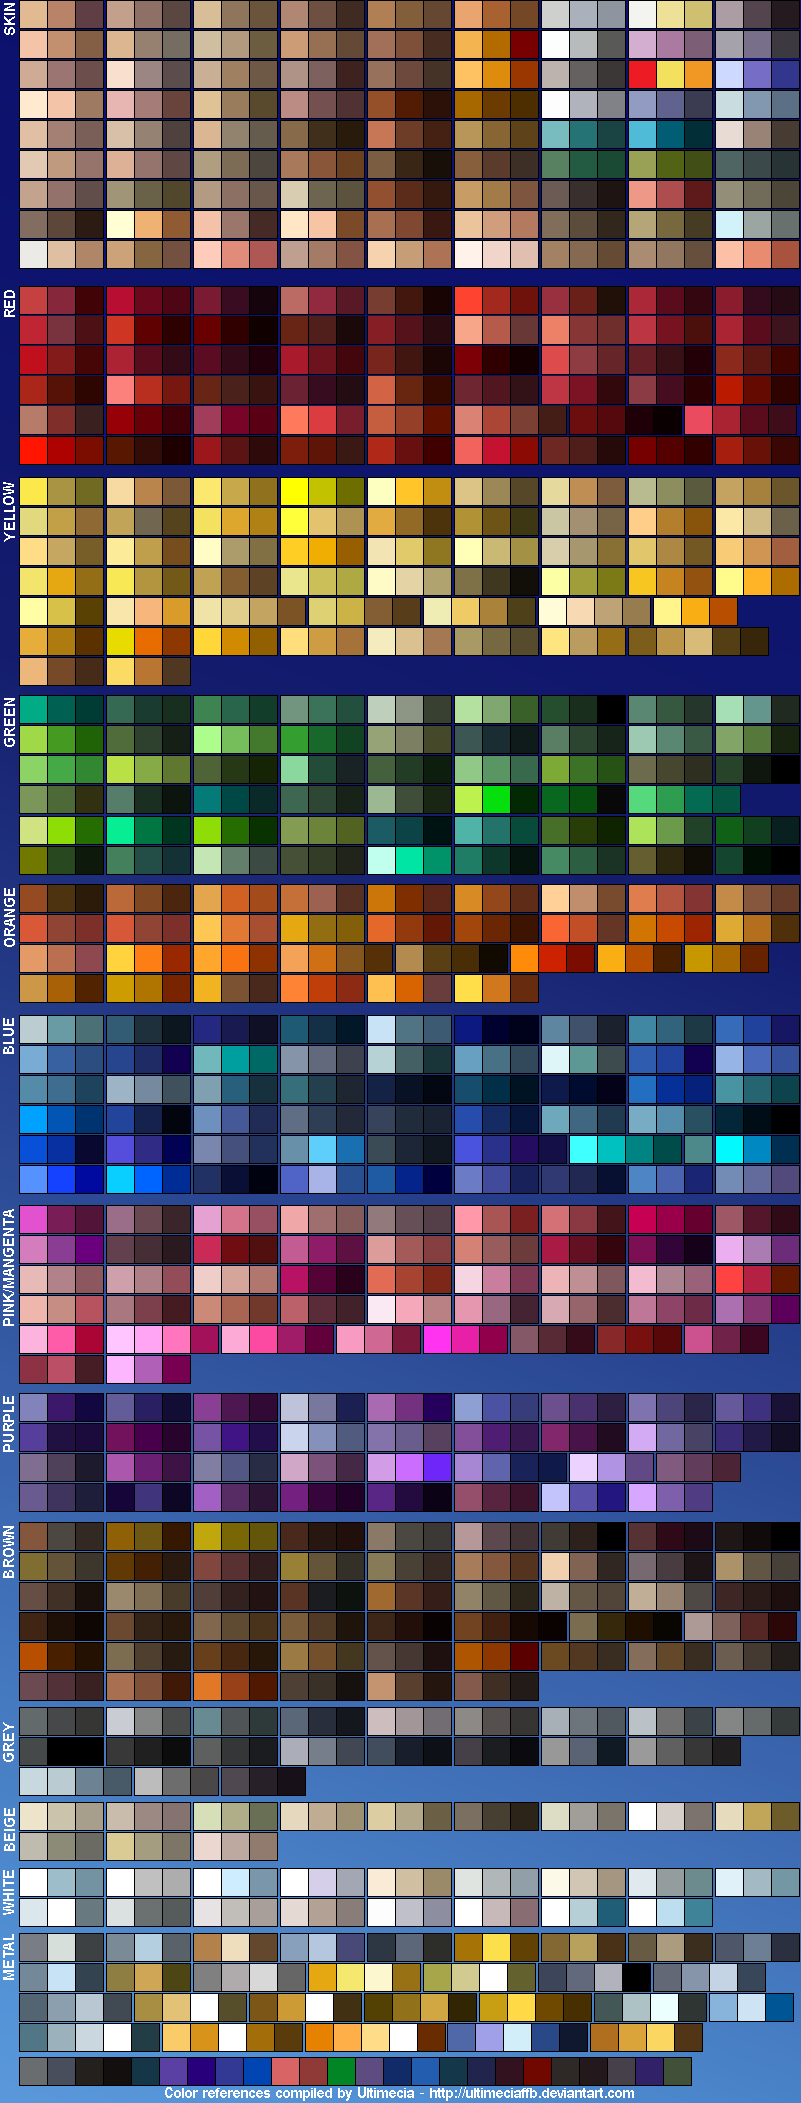 Color References 4 by UltimeciaFFB